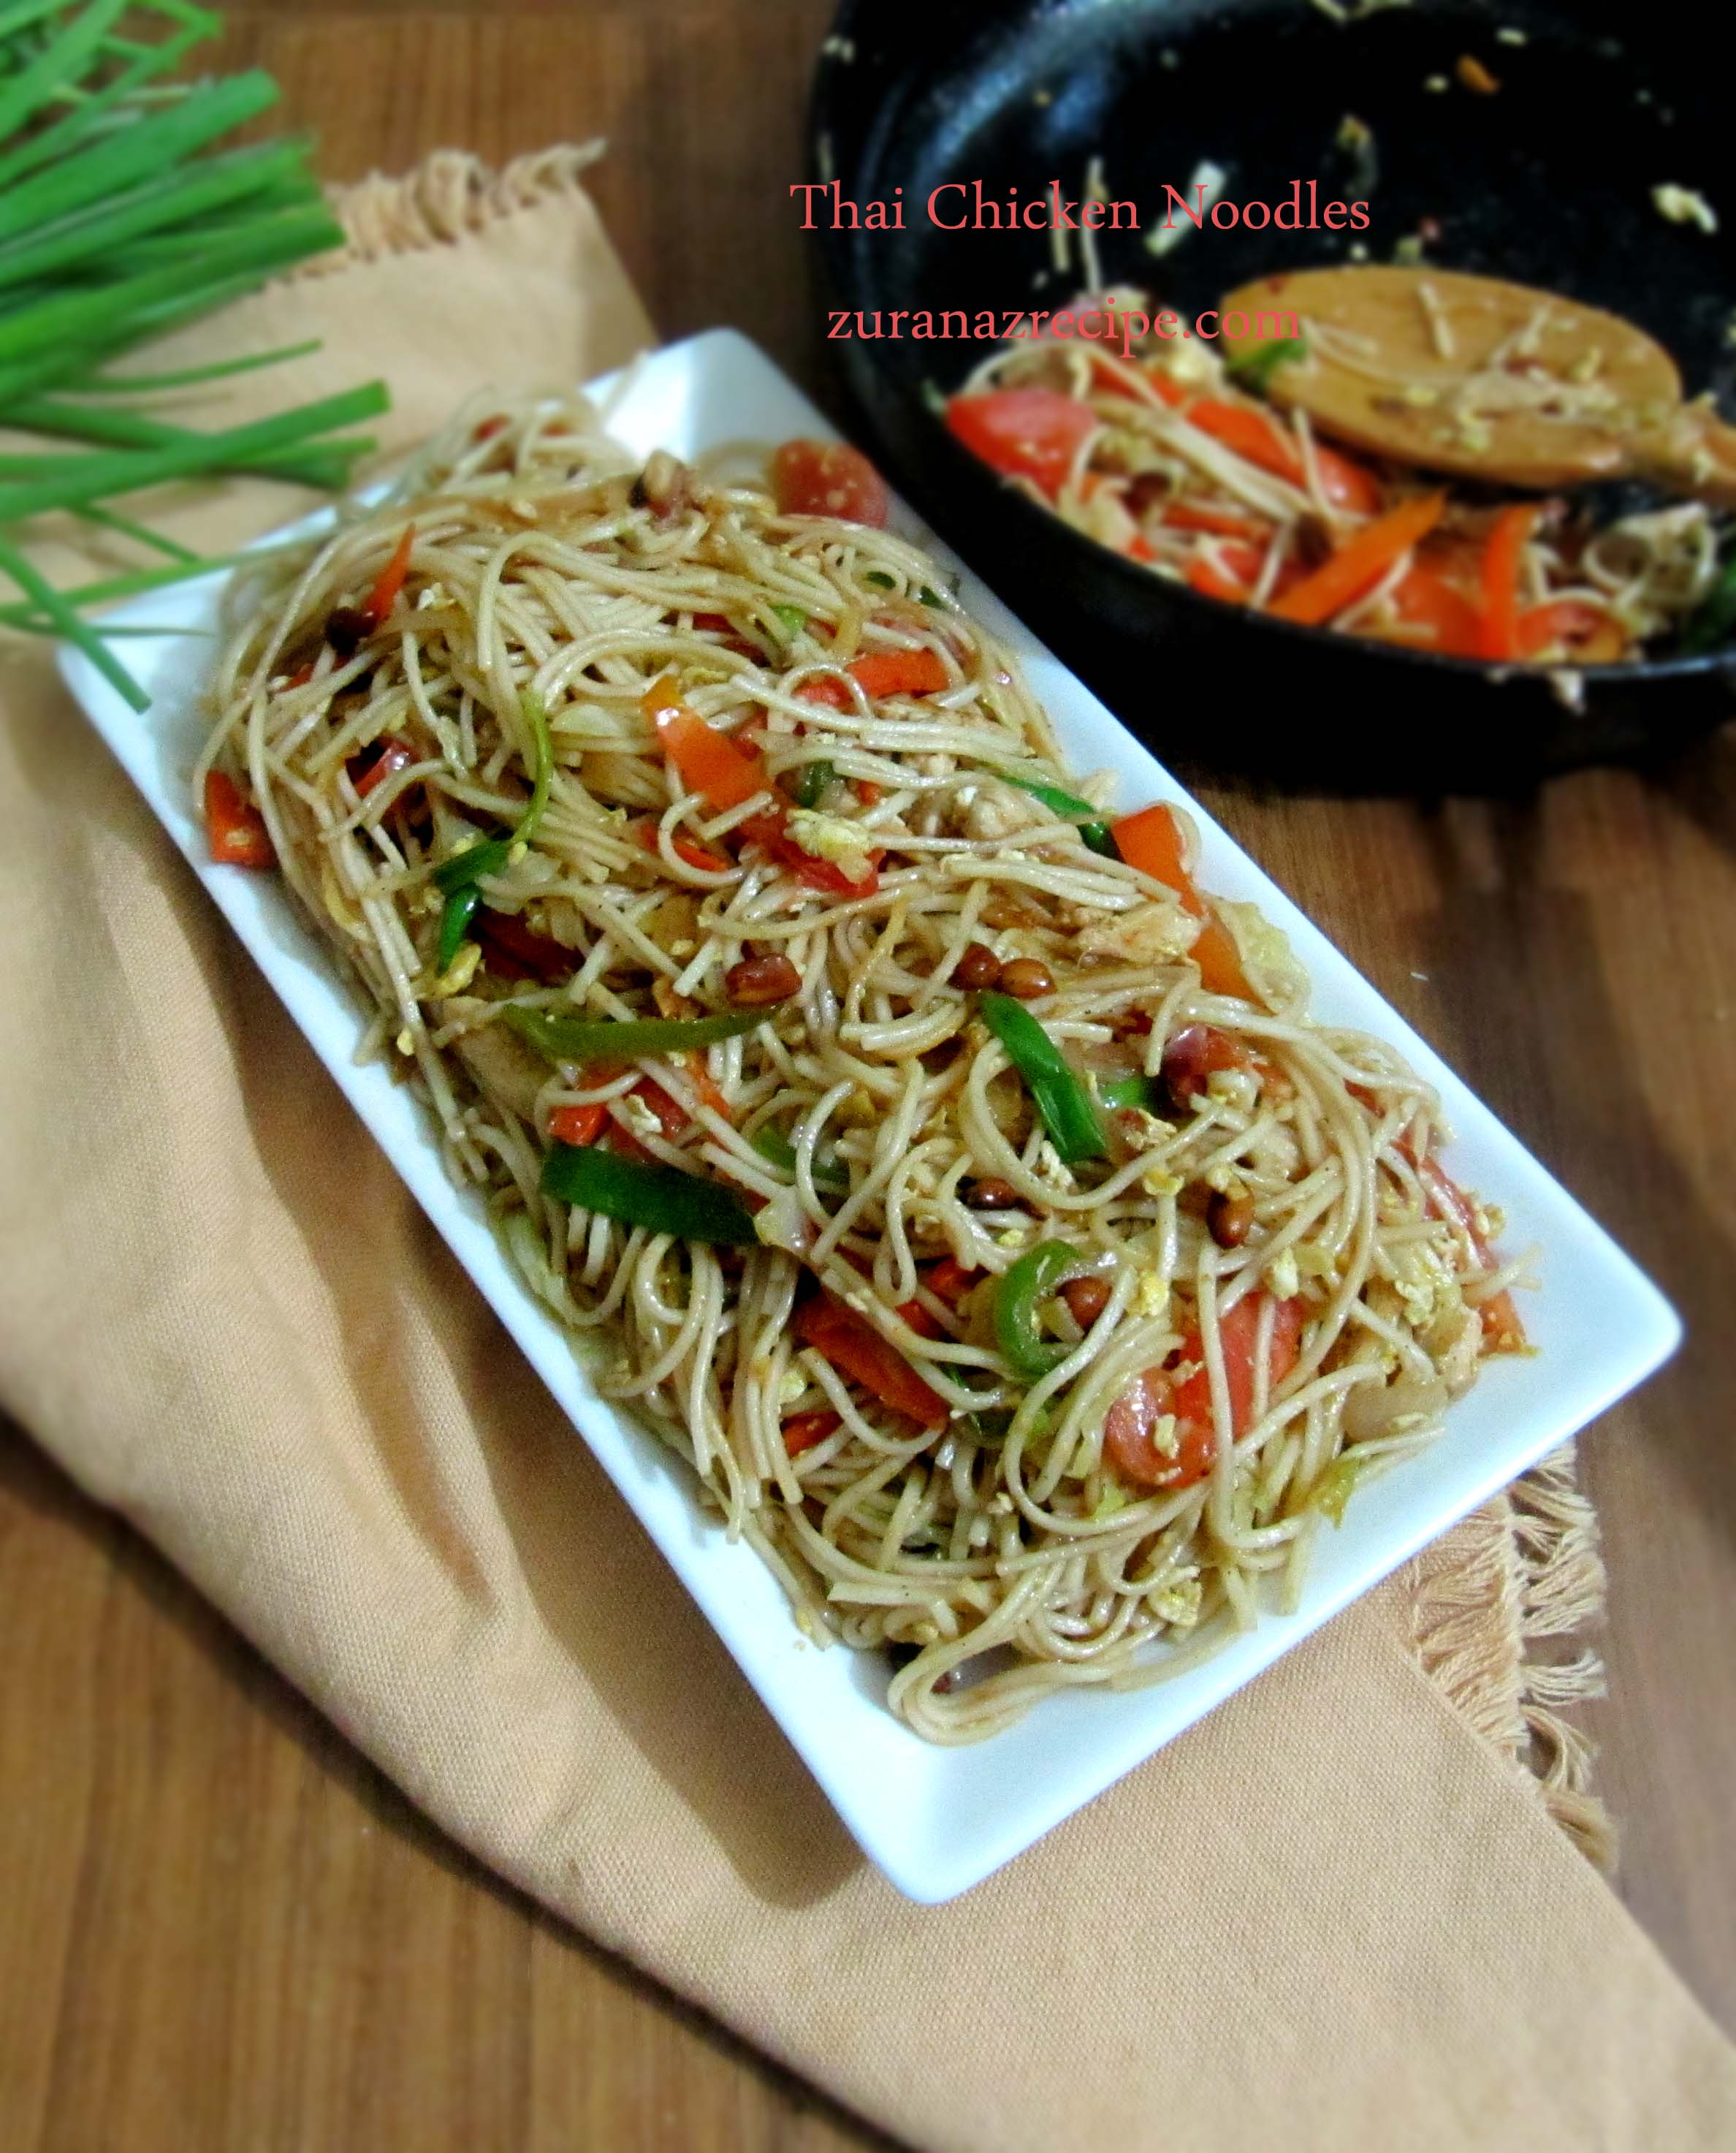 Thai chicken noodles bangla bangladeshi bengali food recipes forumfinder Image collections